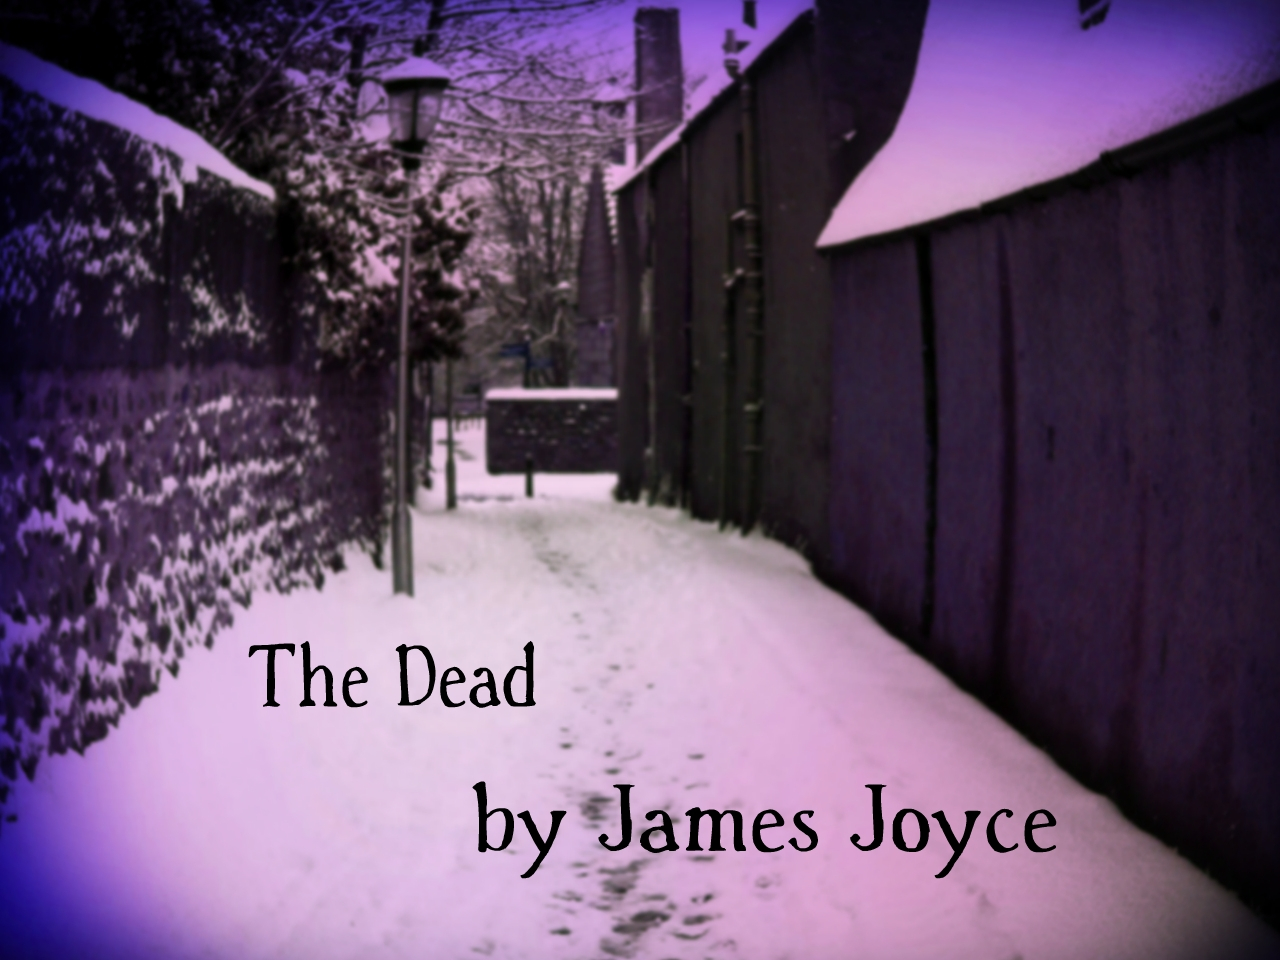 james joyce s the dead fantasy vs reality hubpages